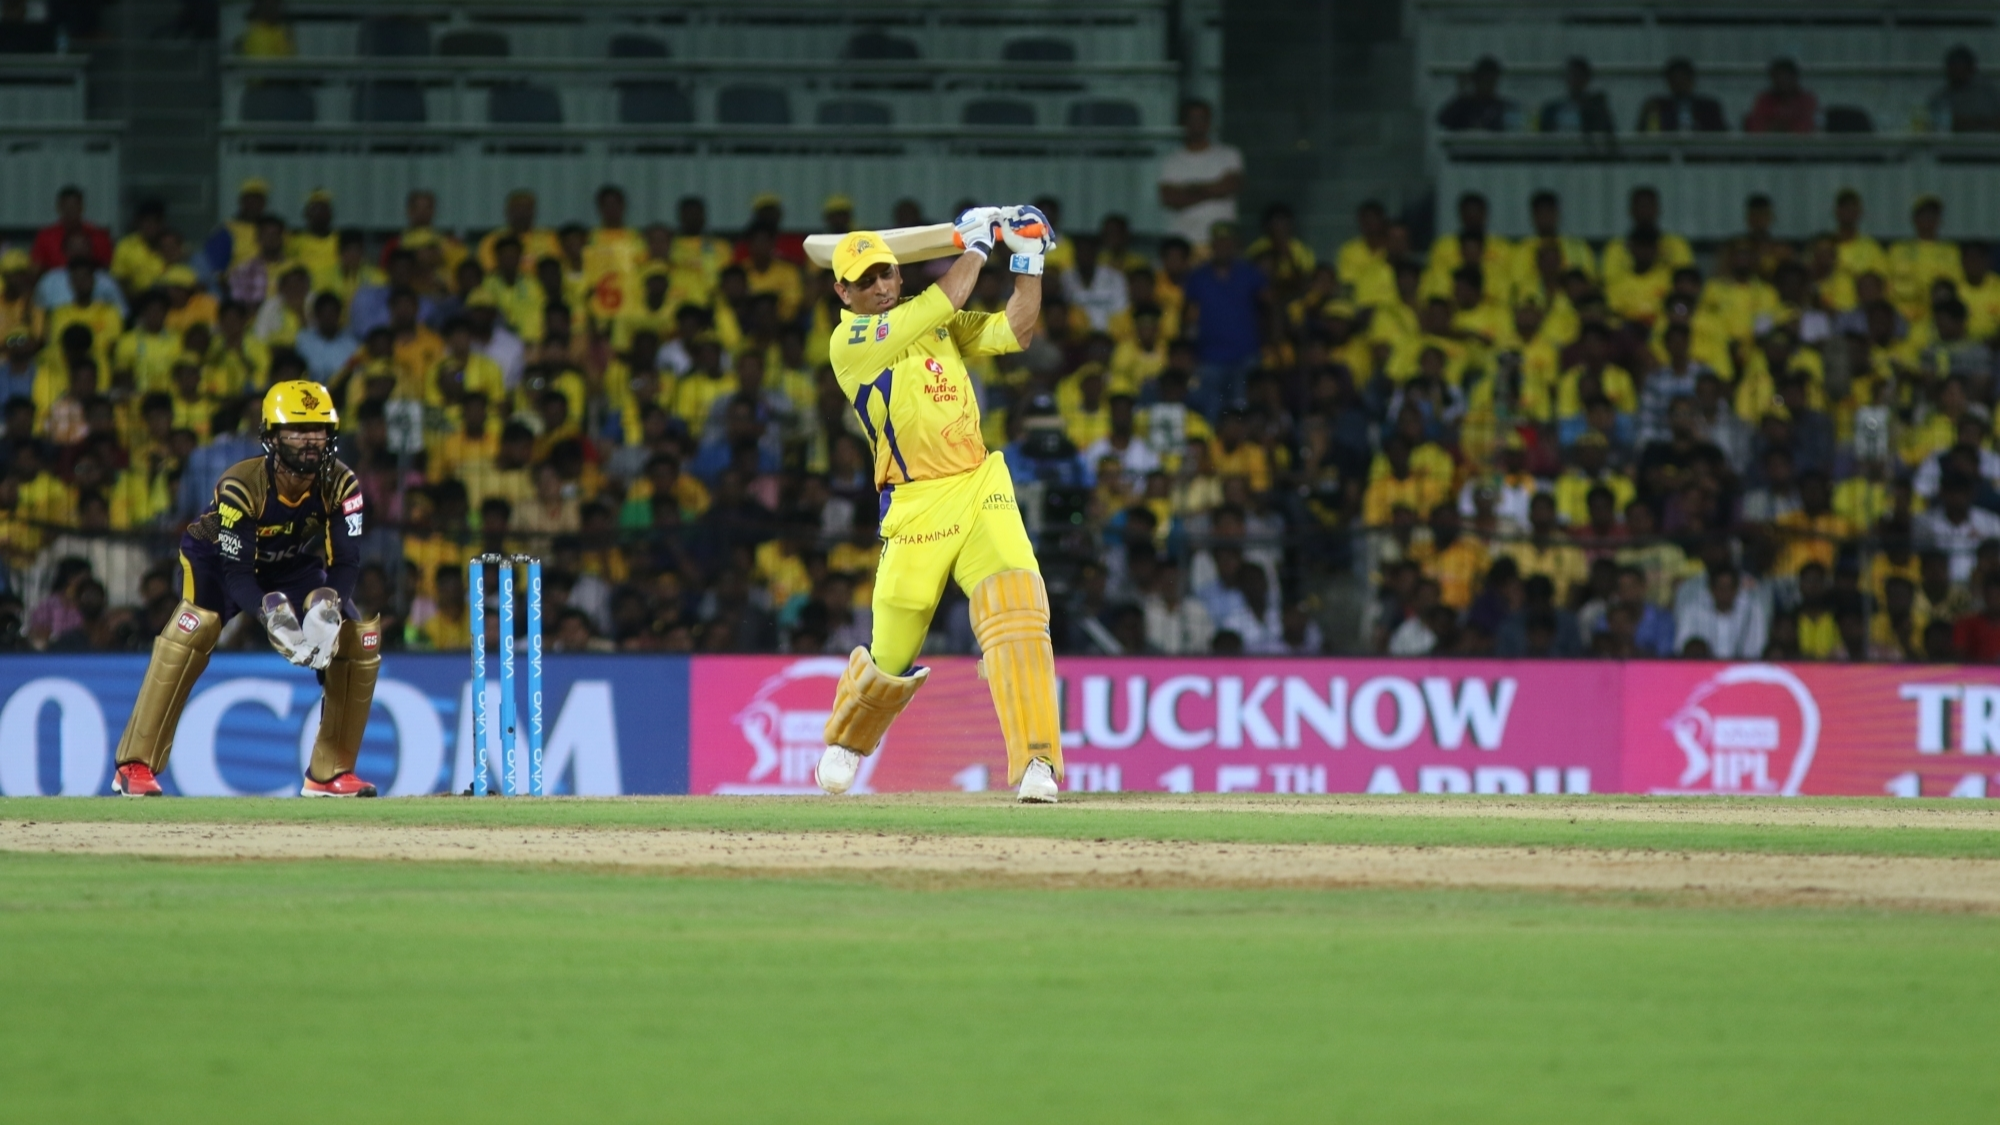 IPL 2018: Dhoni enjoys being part of the CSK group, says Scott Styris